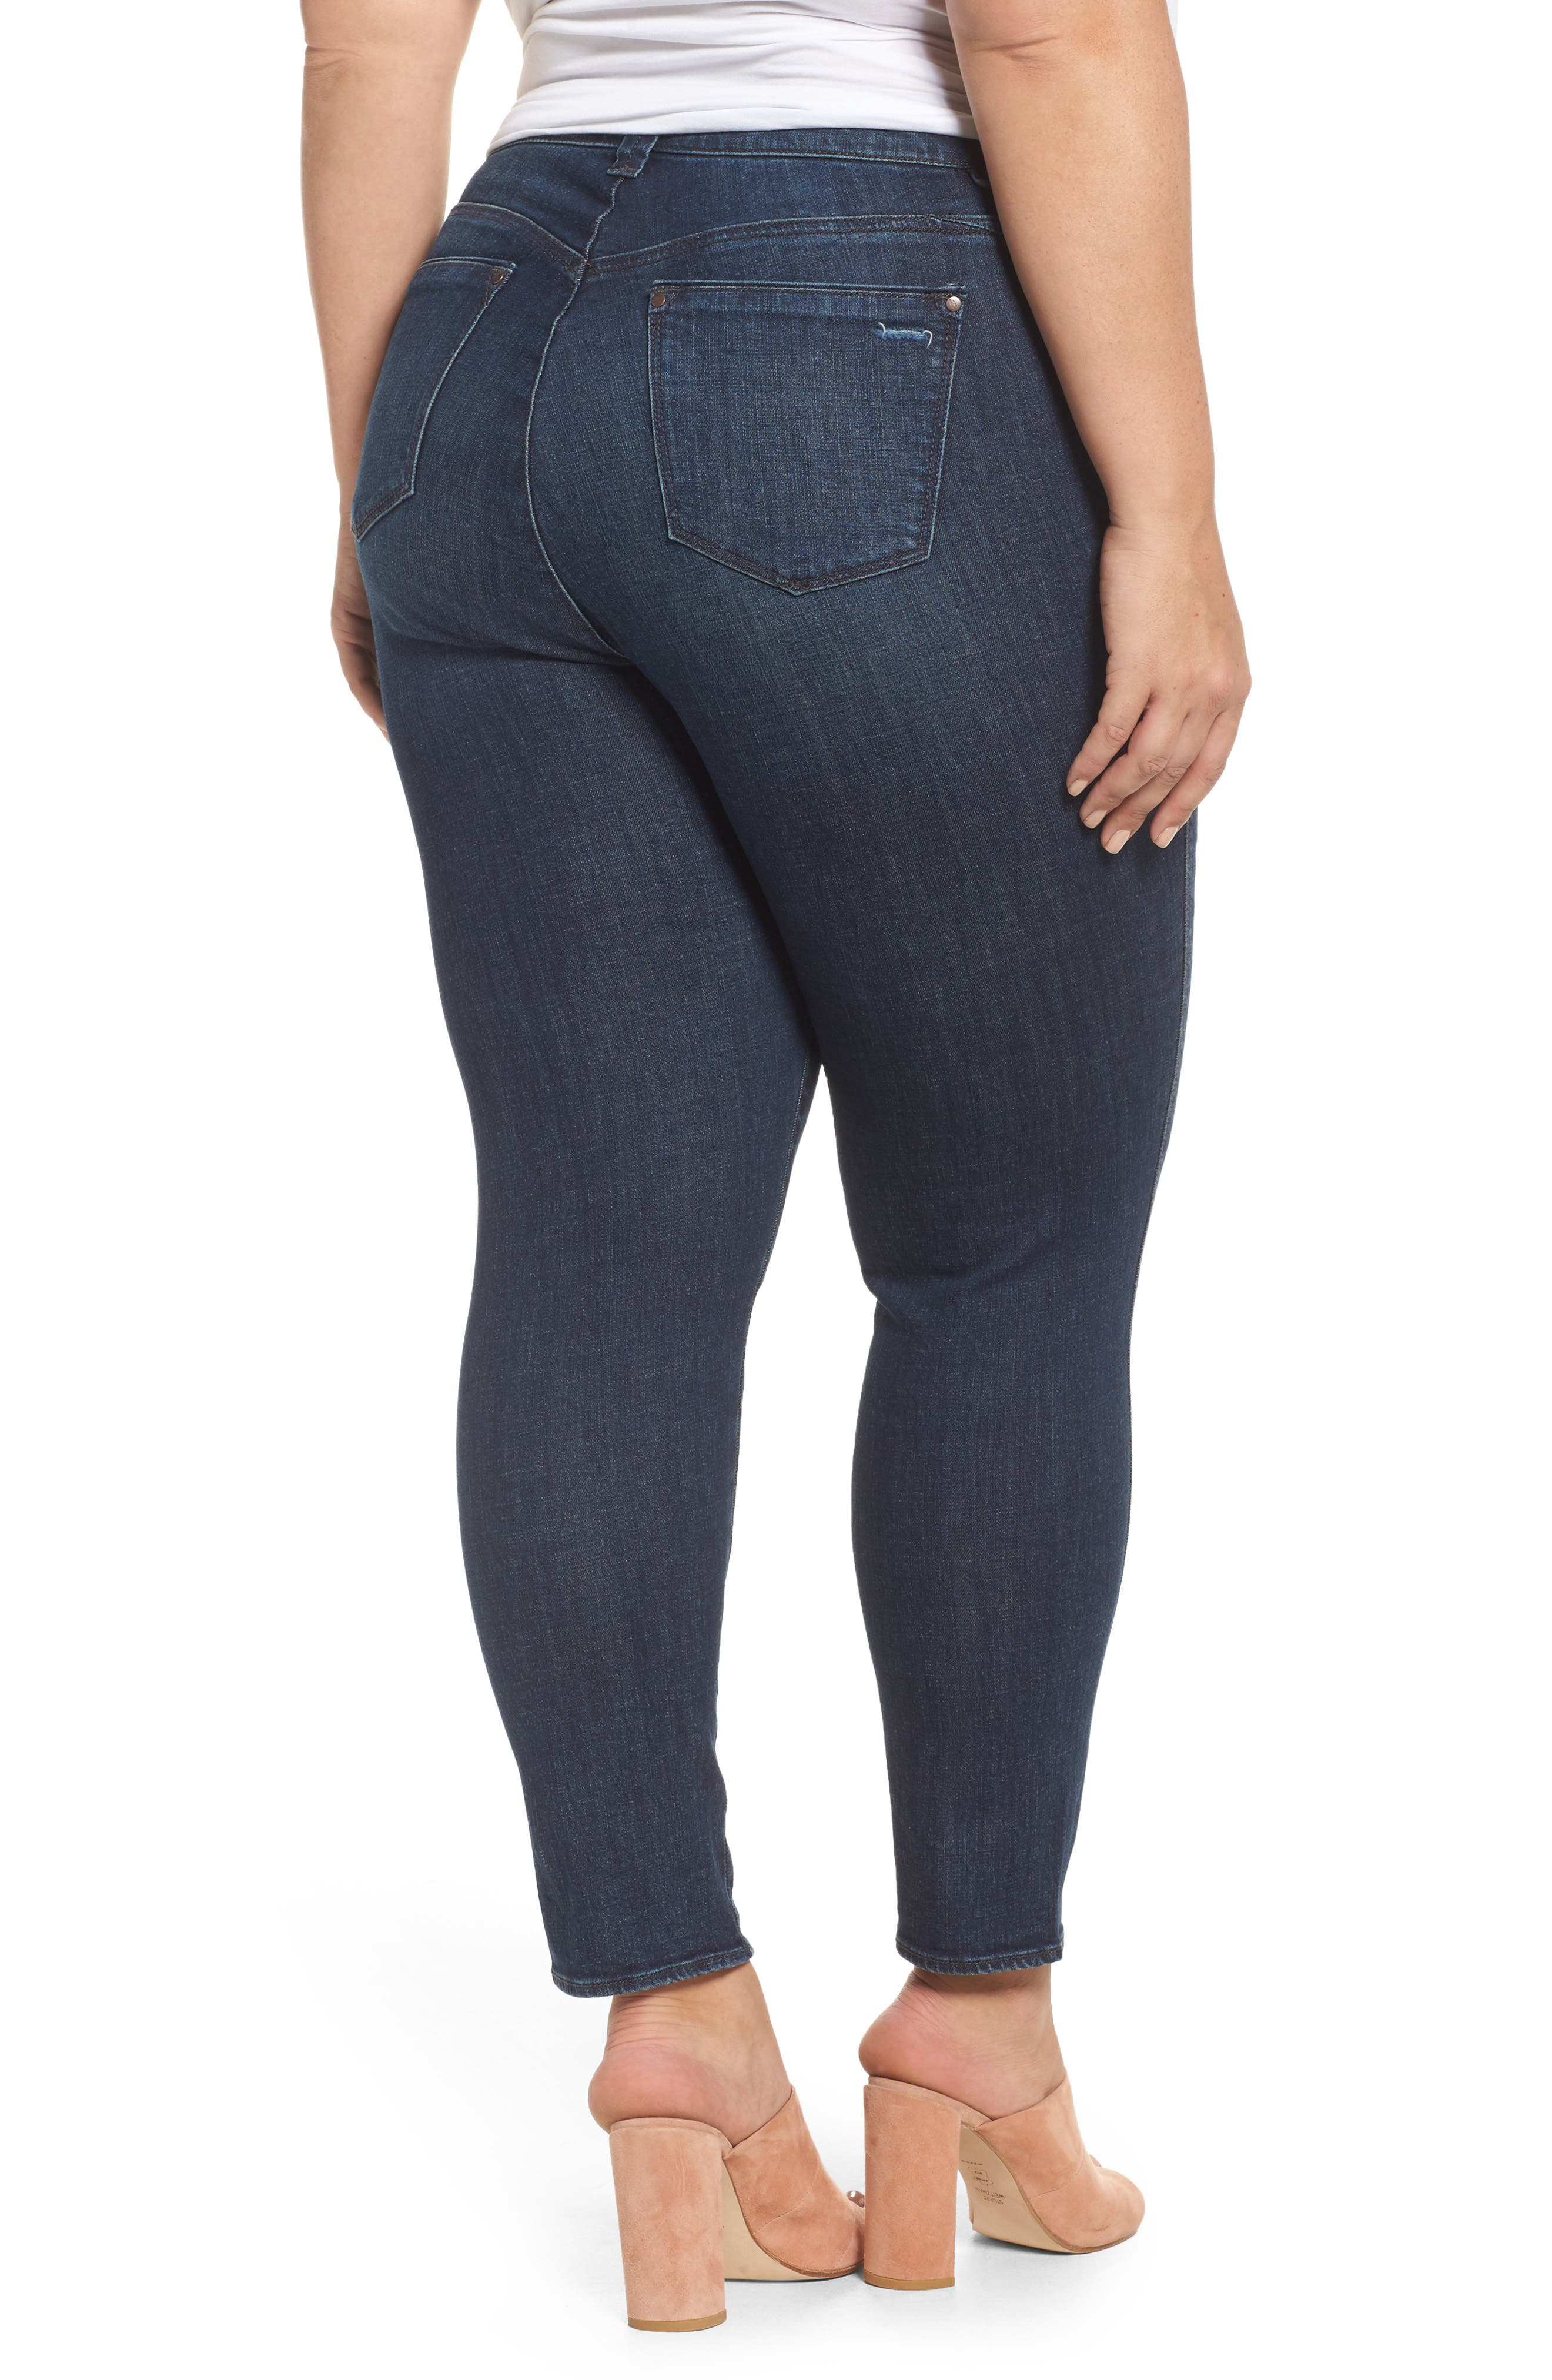 Twisted Seam Ankle Skimmer Jeans,                             Alternate thumbnail 2, color,                             402